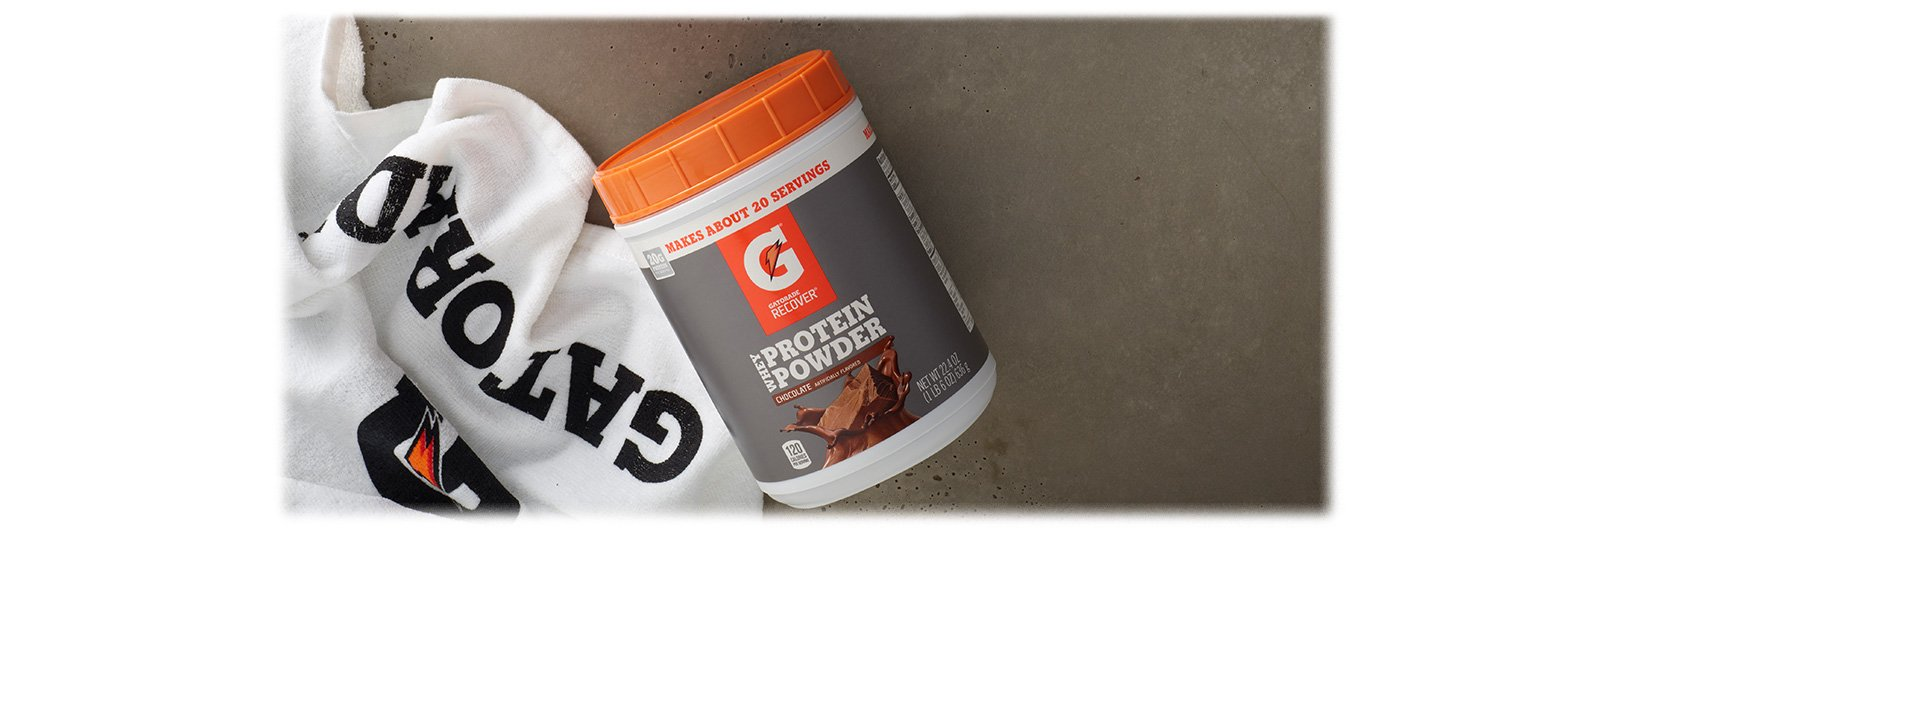 Gatorade Whey Protein Powder, Chocolate, 22.4 Ounce (20 servings per canister, 20 grams of protein per serving)